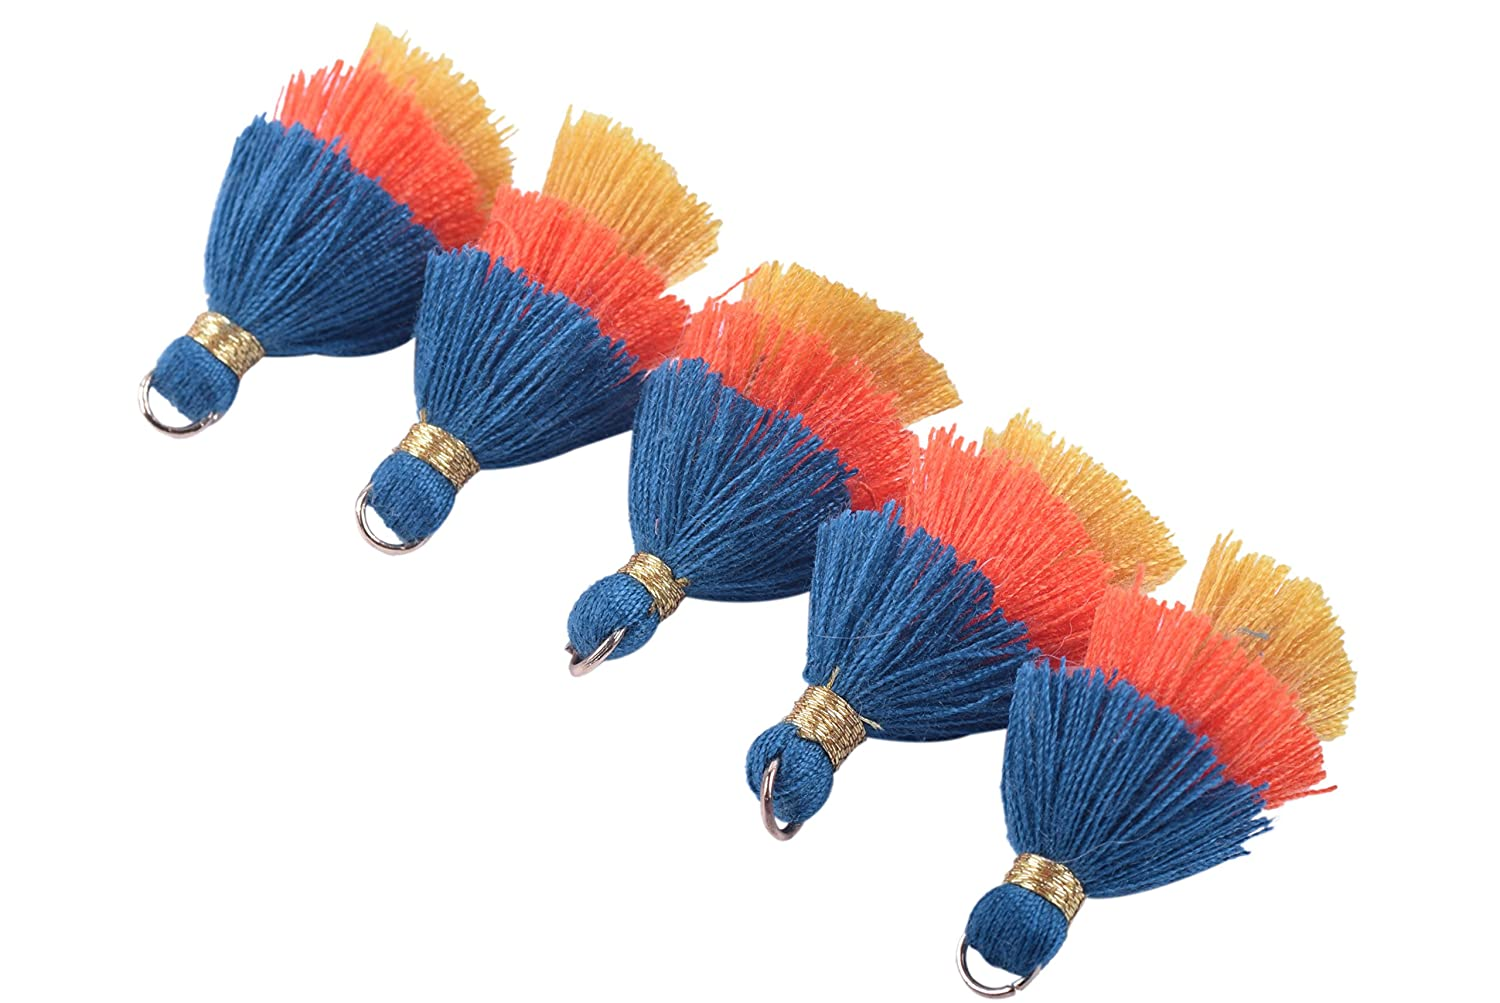 Clothing KONMAY 10pcs 1.4 3.5cm Tiny Tri-Layered Tassels with Gold Jump Ring for Jewelry Making